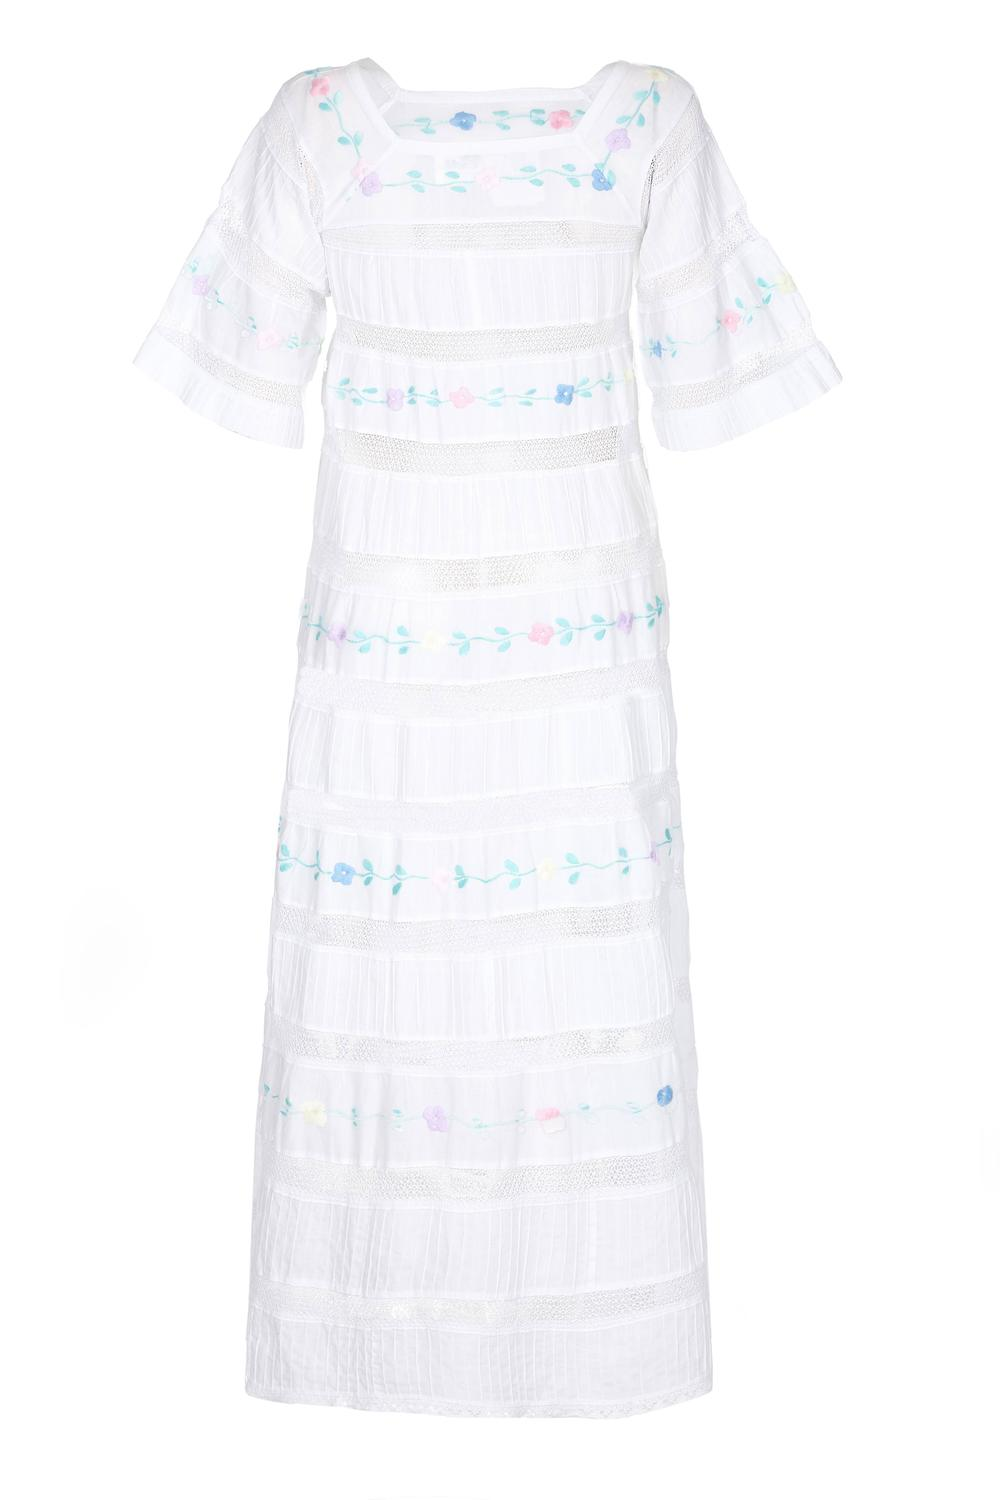 1970s tachi castillo white embroidered cotton mexican for 1970s wedding dresses for sale